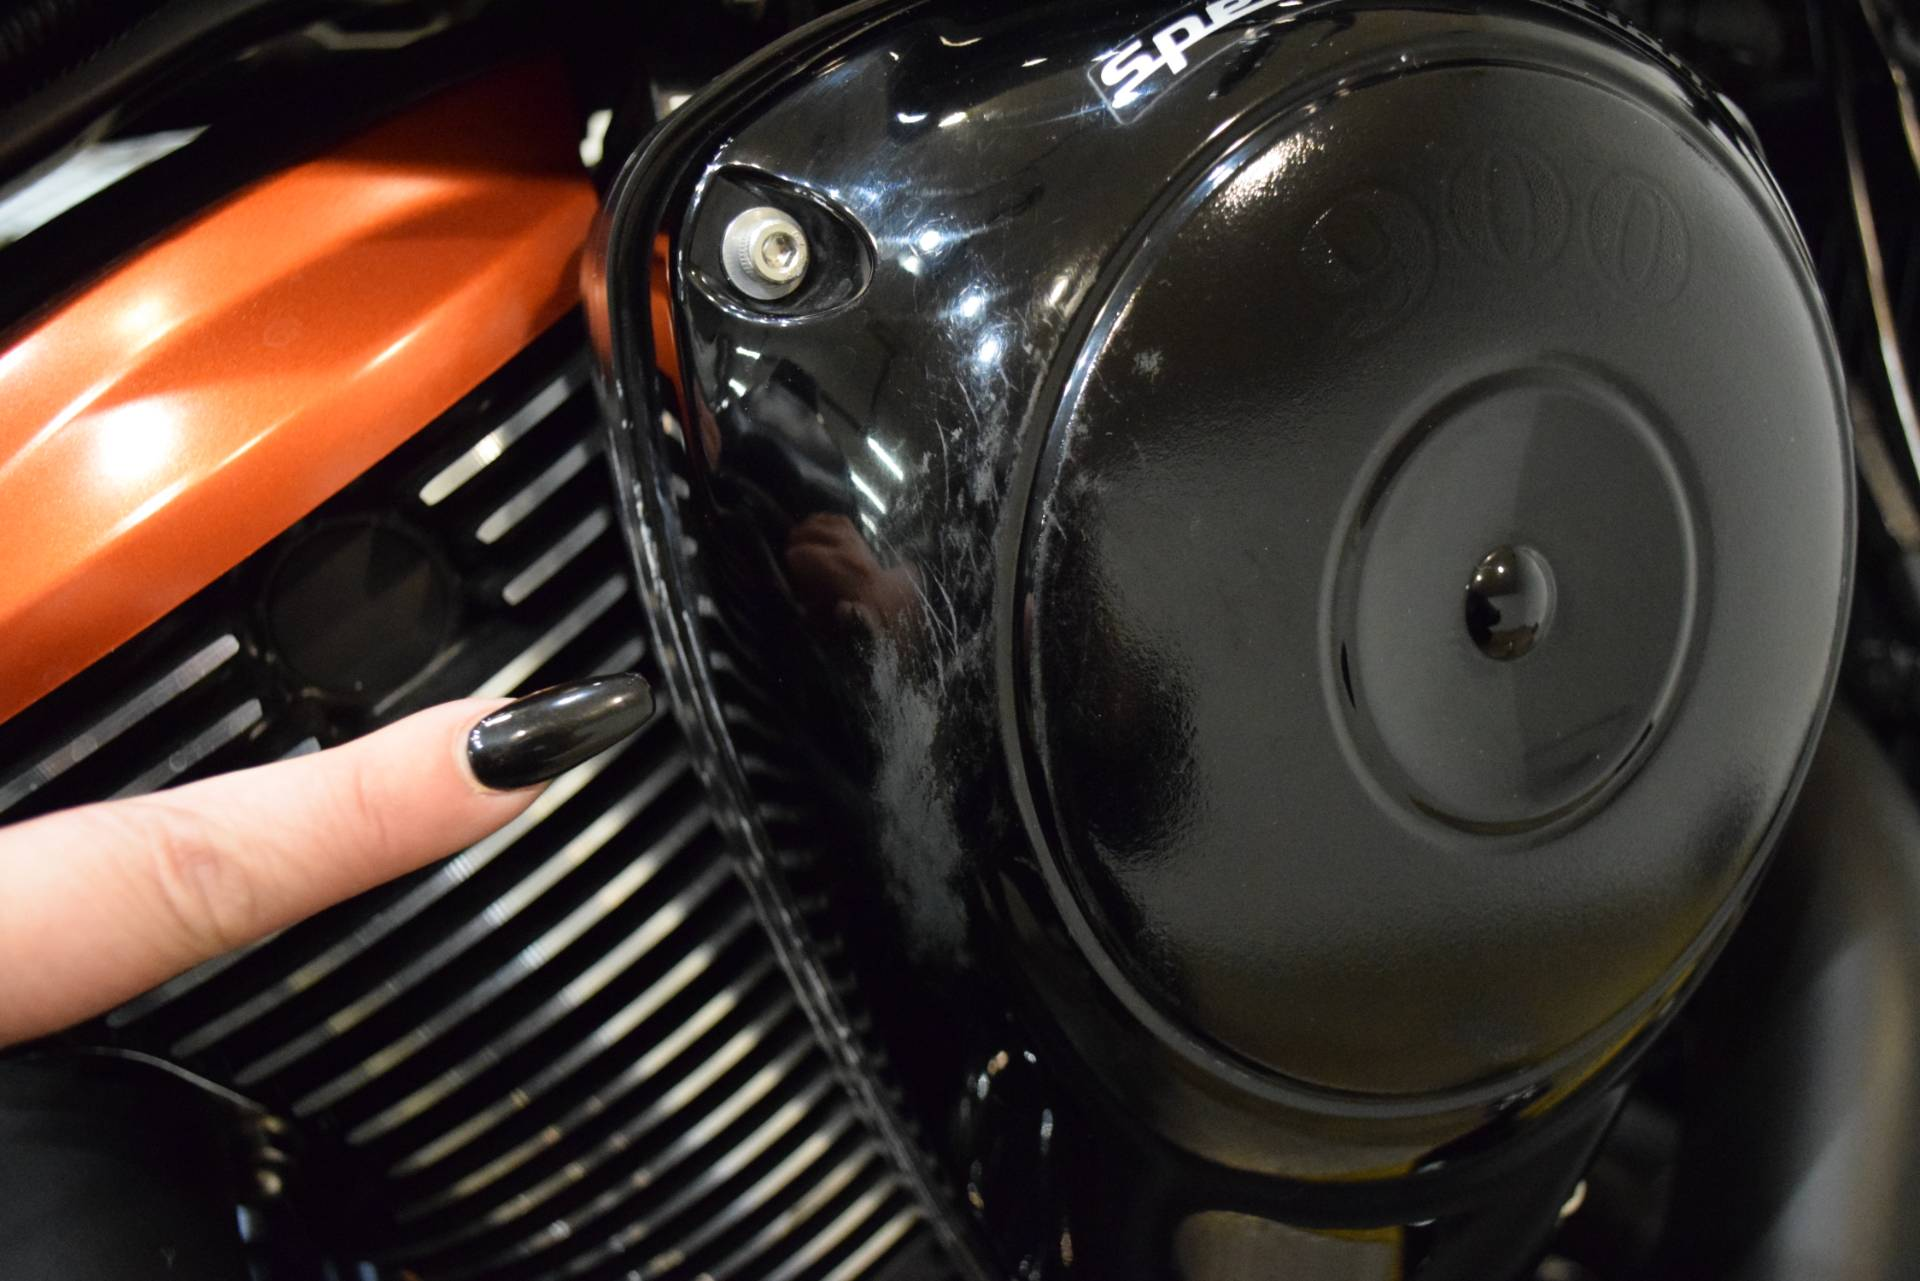 2009 Kawasaki Vulcan® 900 Custom in Wauconda, Illinois - Photo 40